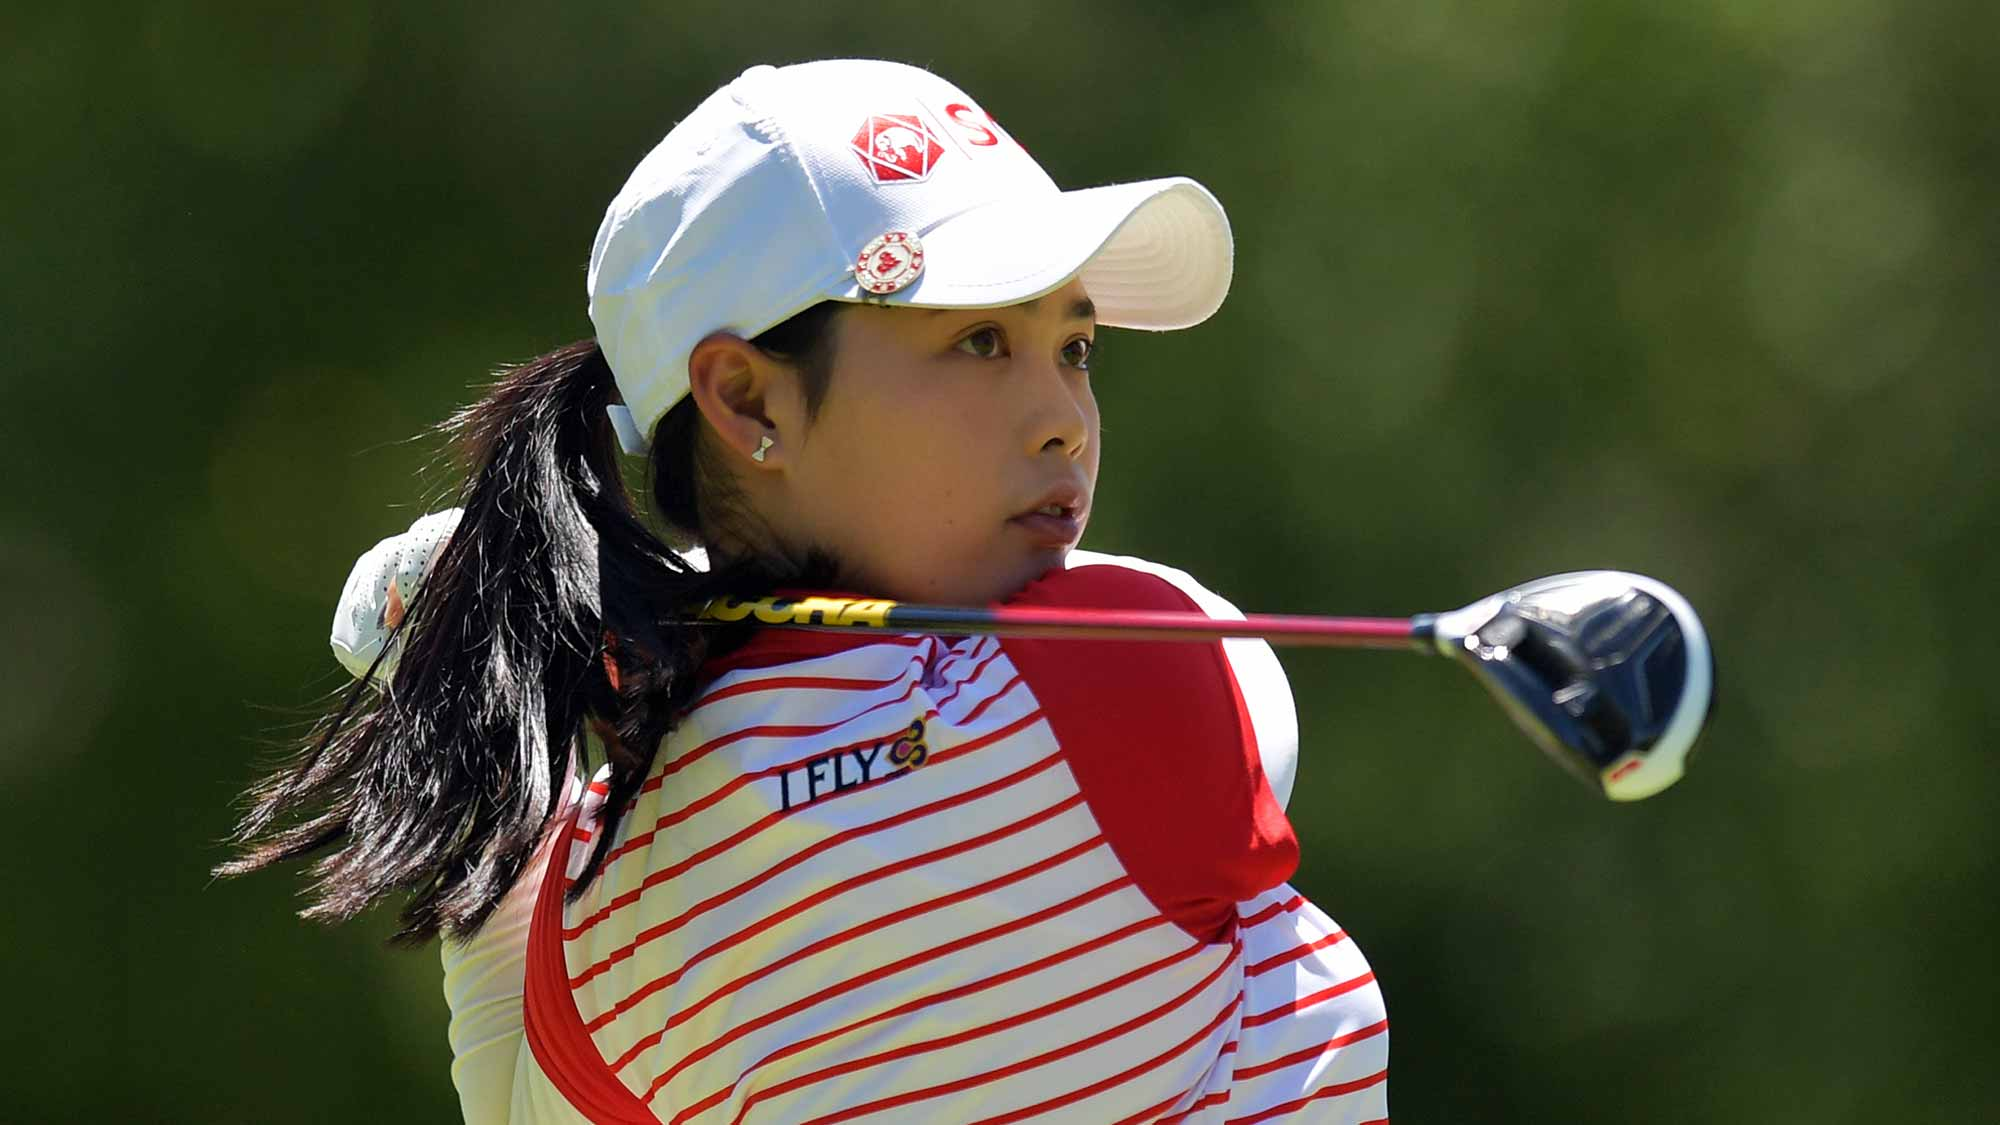 Moriya Jutanugarn of Thailand hits her tee shot on the second hole during the final round of the Walmart NW Arkansas Championship Presented by P&G